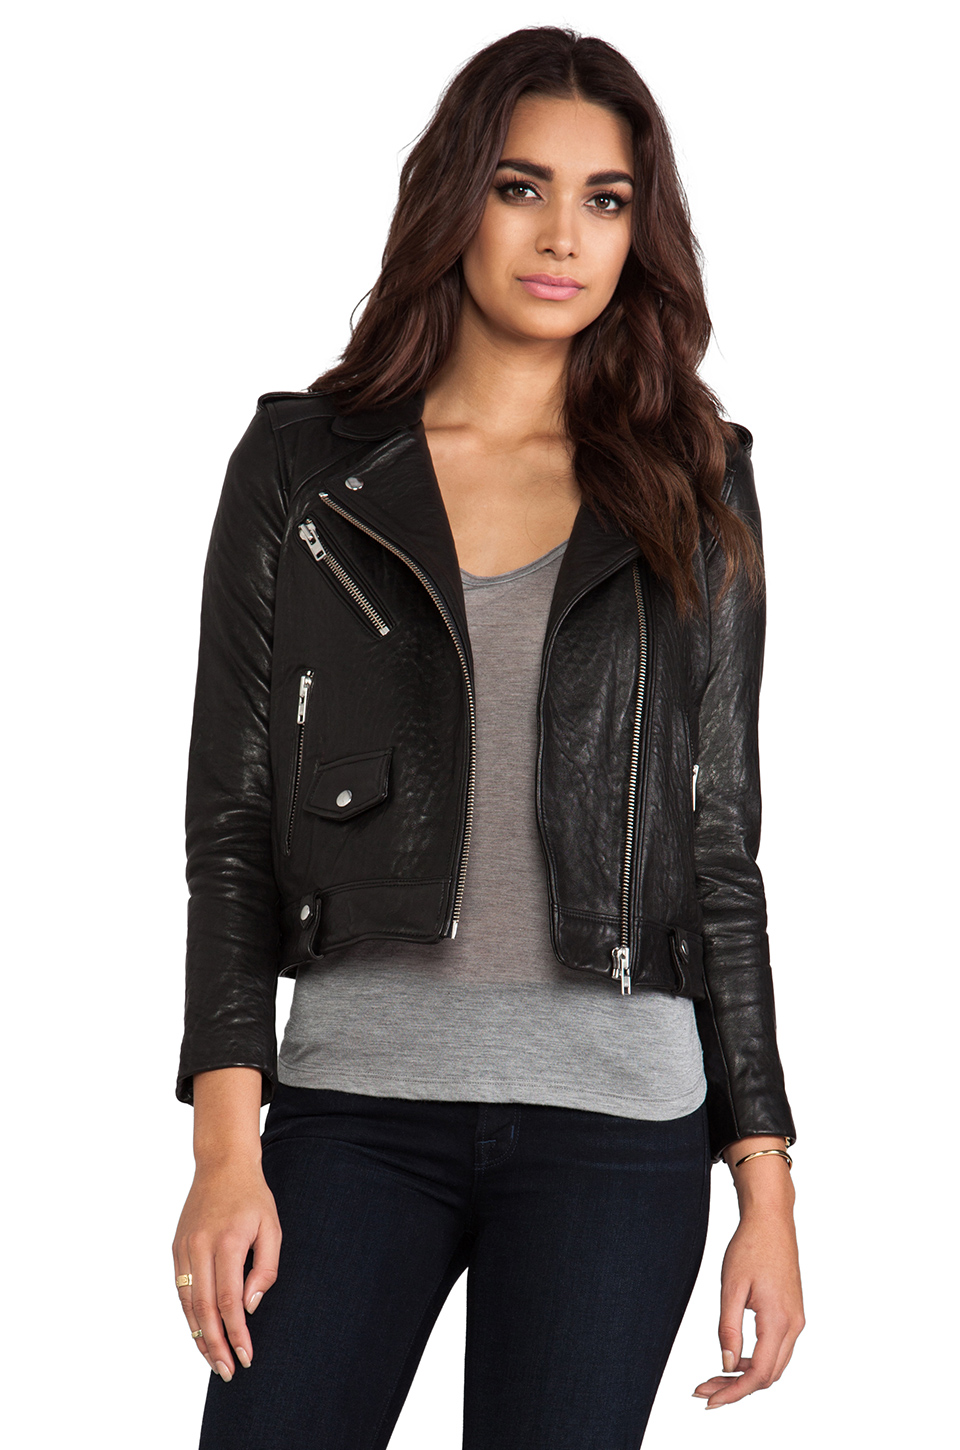 Iro leather jackets